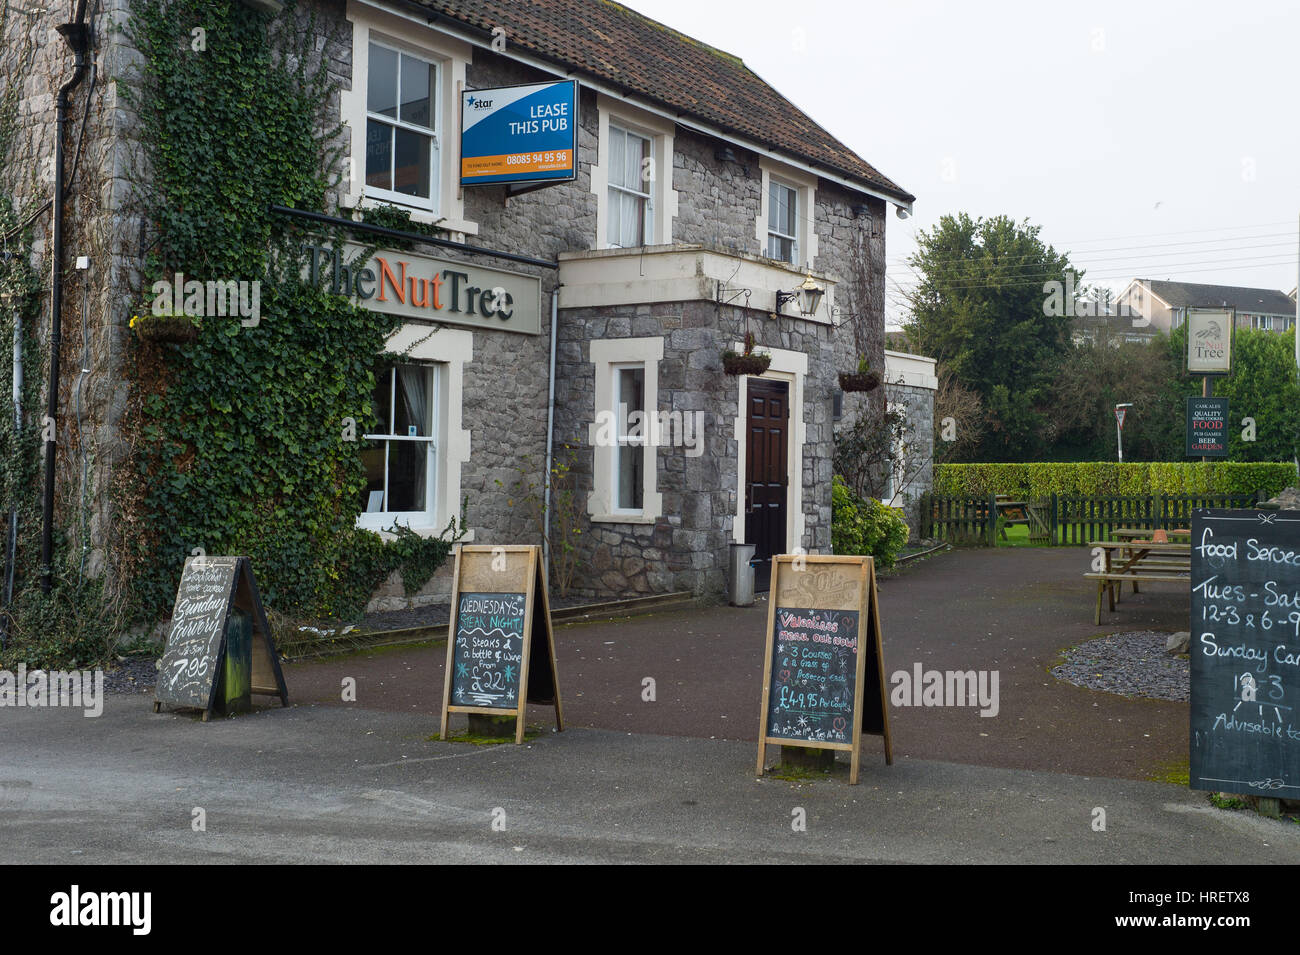 The Nut Tree Public House in Worle, Weston-Super-mare England, closed and lease for sale. - Stock Image